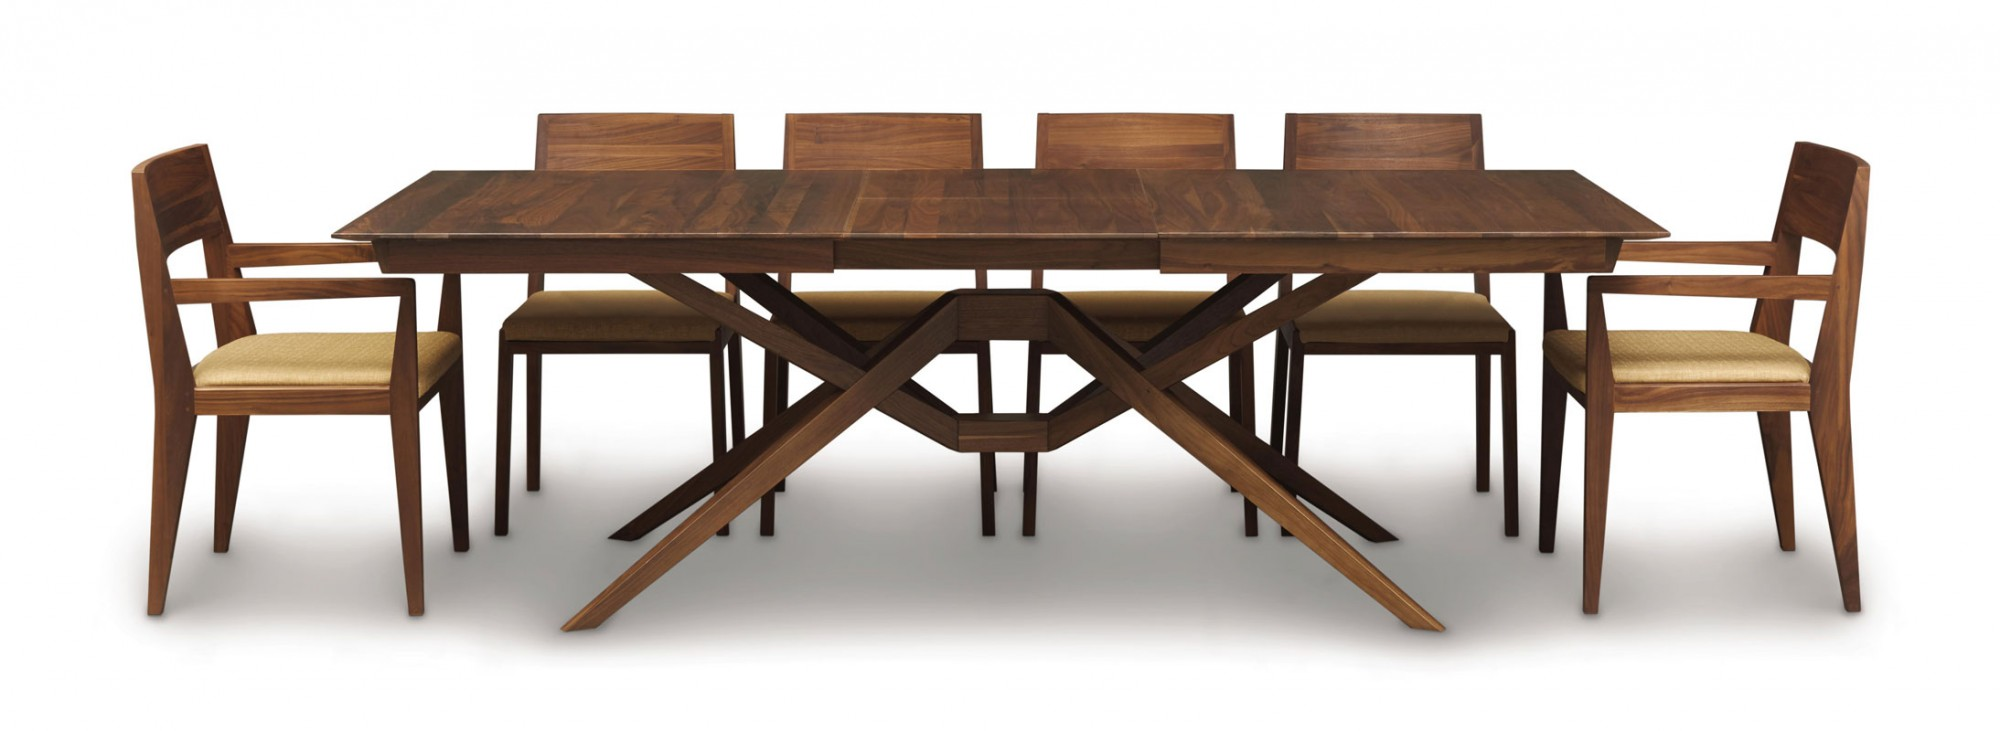 Copeland exeter extension table ohio hardwood furniture